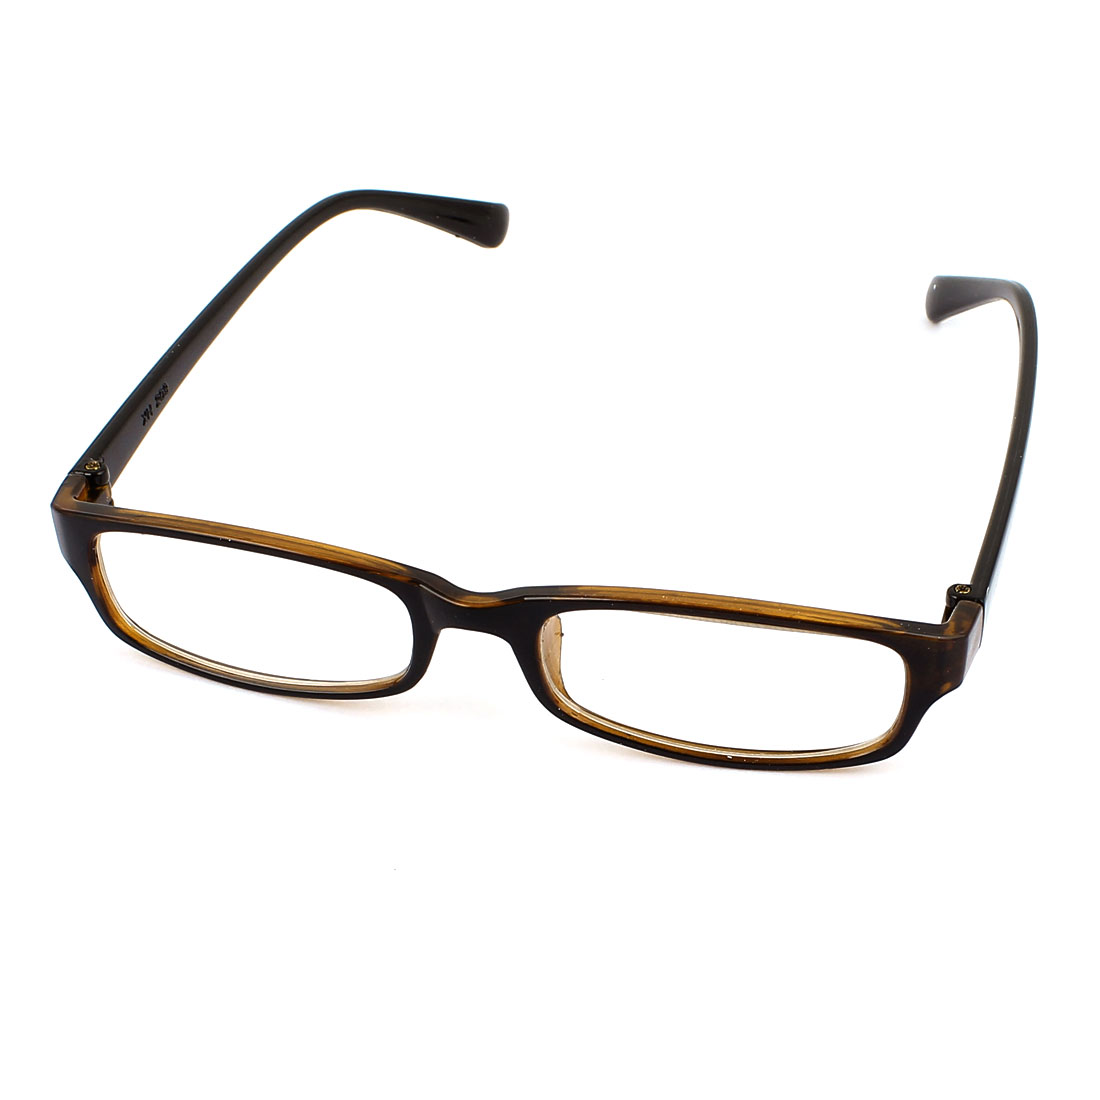 Full Plastic Frame Single Bridge Eyeglasses Eyewear Plain Glasses Black